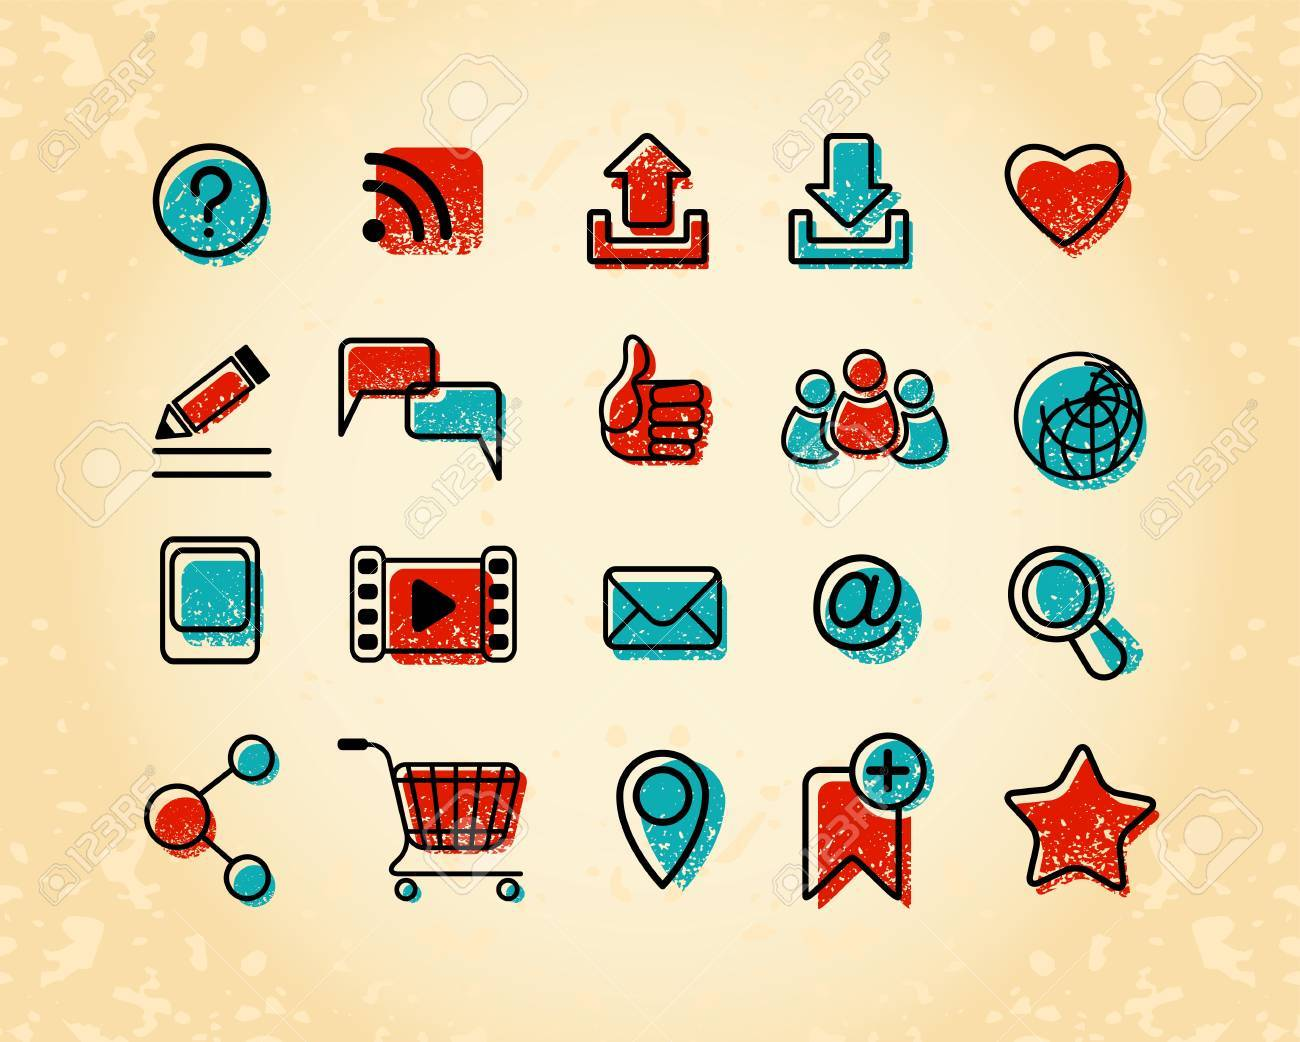 Set of 20 Internet communication icons in retro and grunge style Stock Vector - 20271809